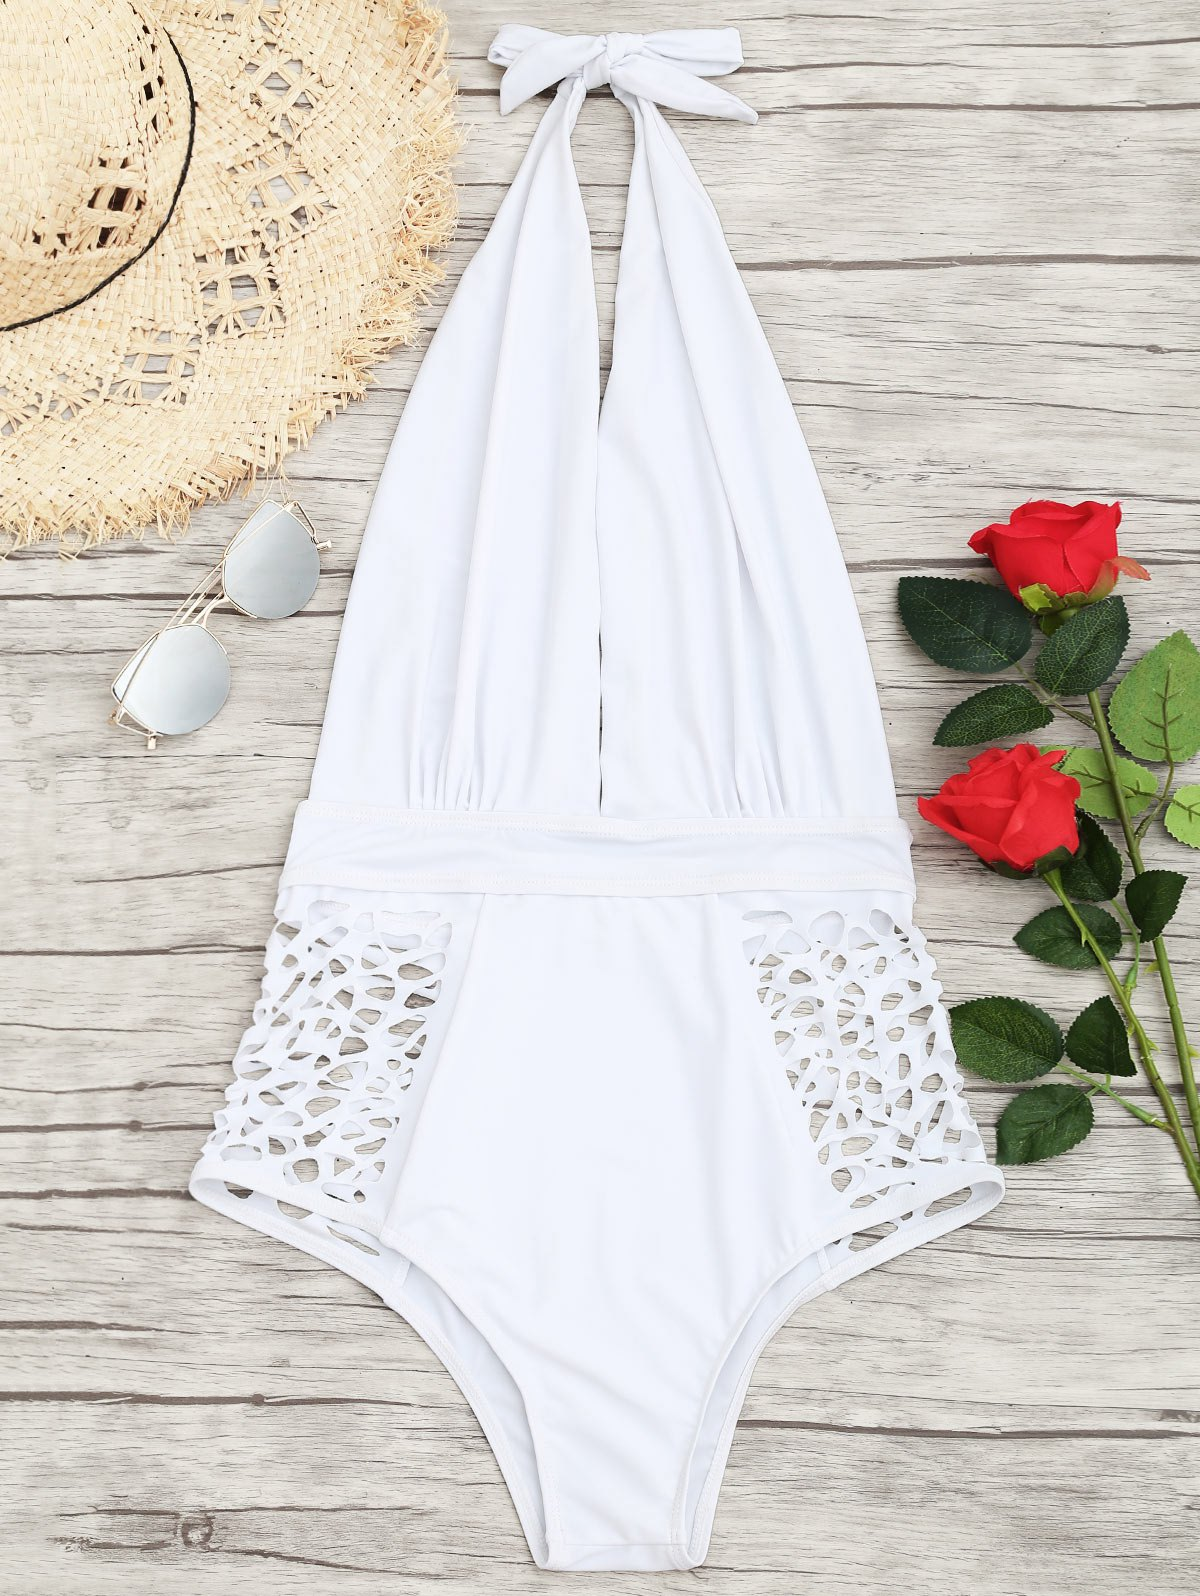 Affordable Cut Out High Waisted Plunge Swimsuit